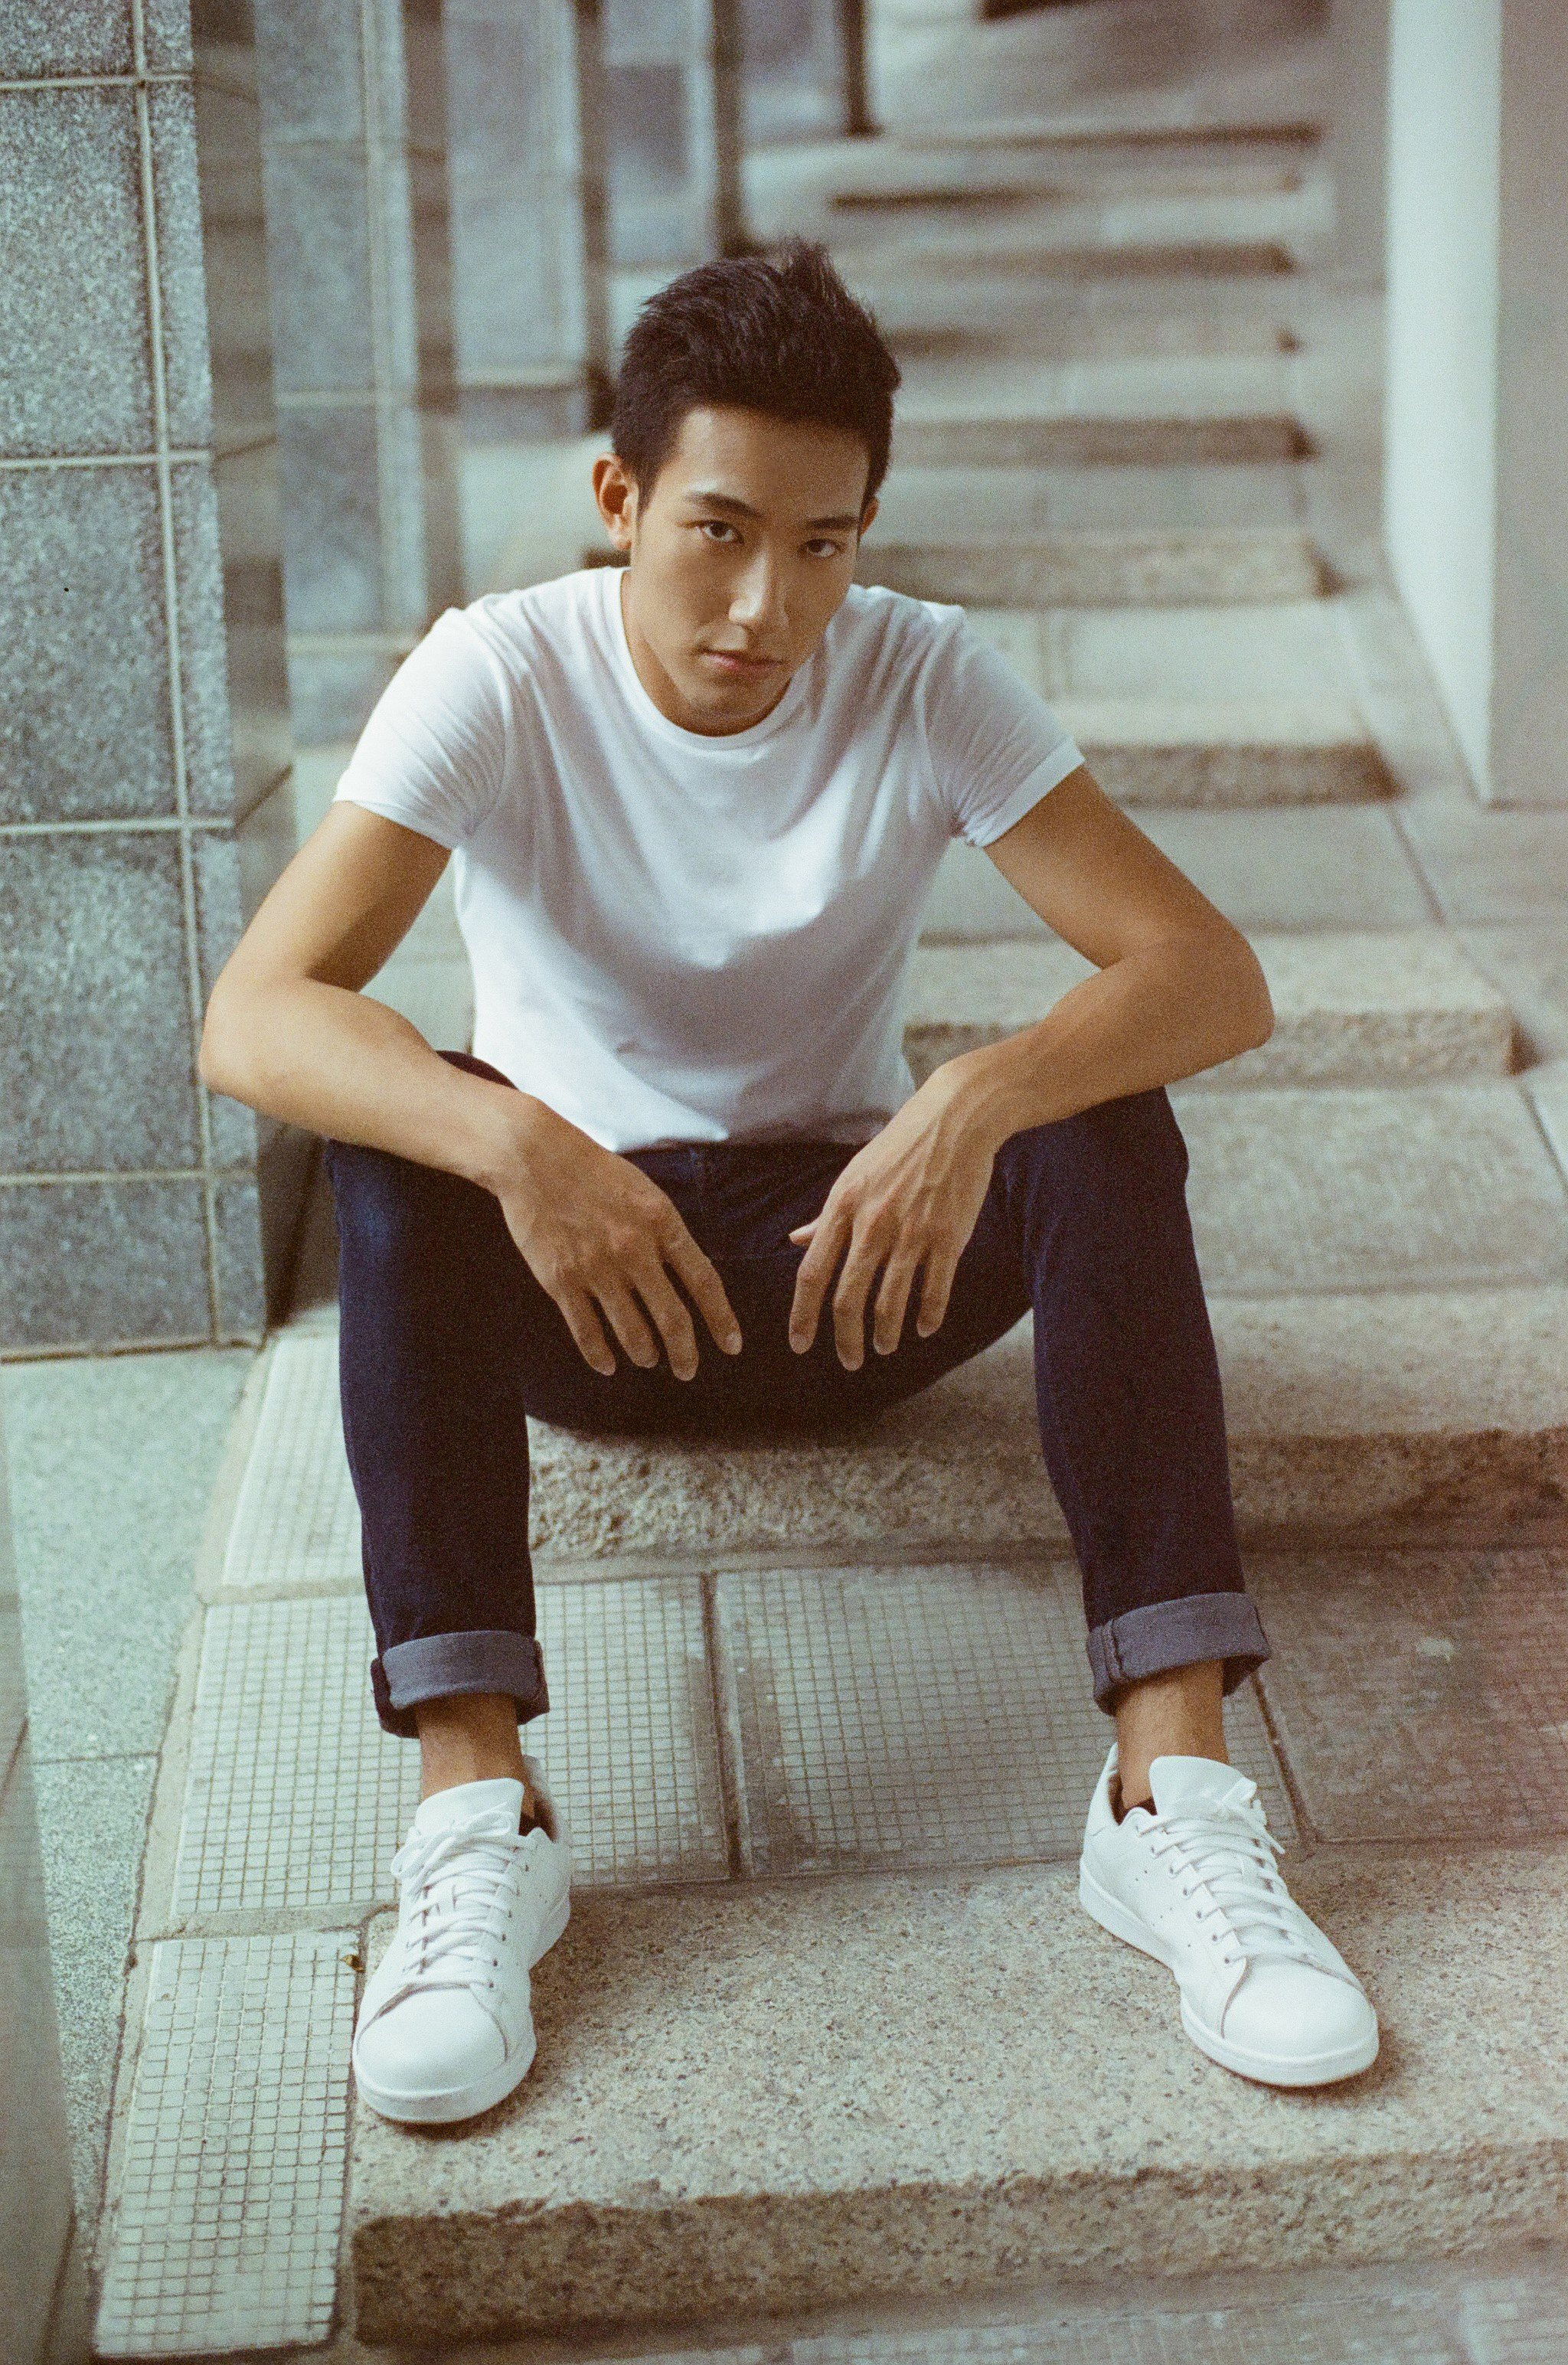 Raymond Chin 攝影師最新紀錄 - SMI Soul Entertainment model shooting - William Lee(2016-08-15,人像攝影)